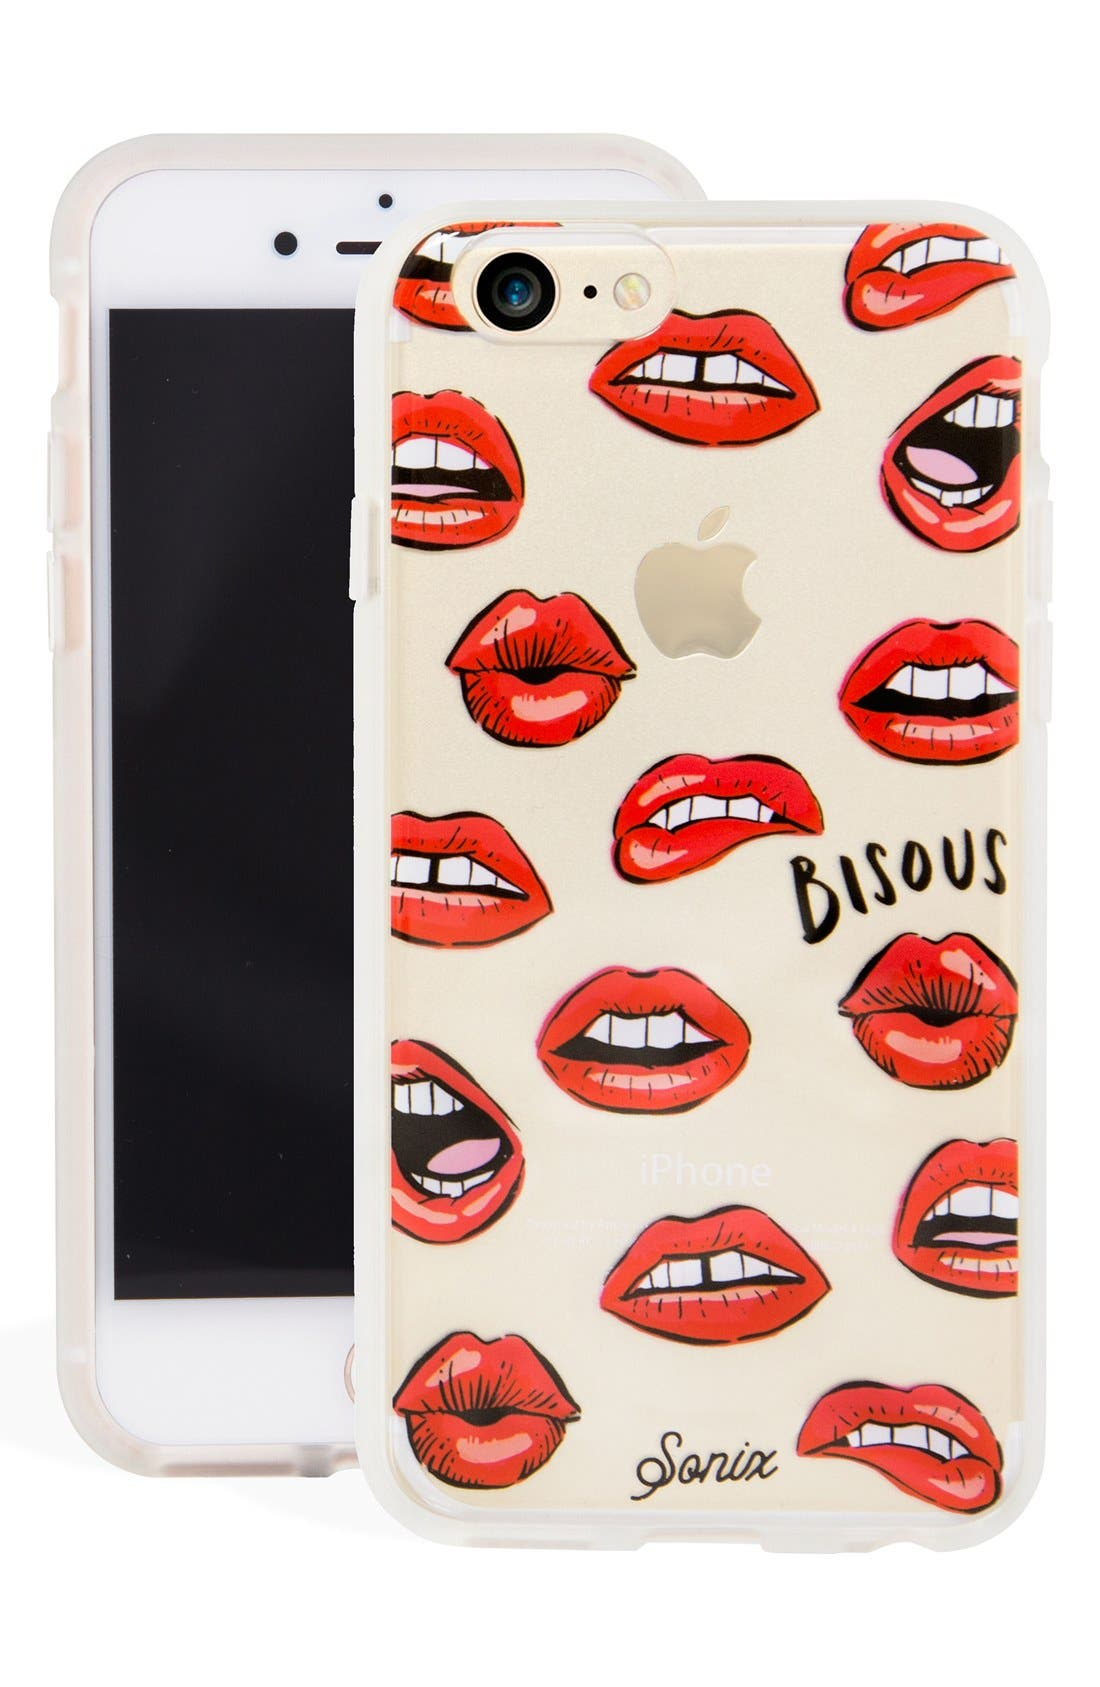 SONIX Bisous iPhone 7 & 7 Plus Case